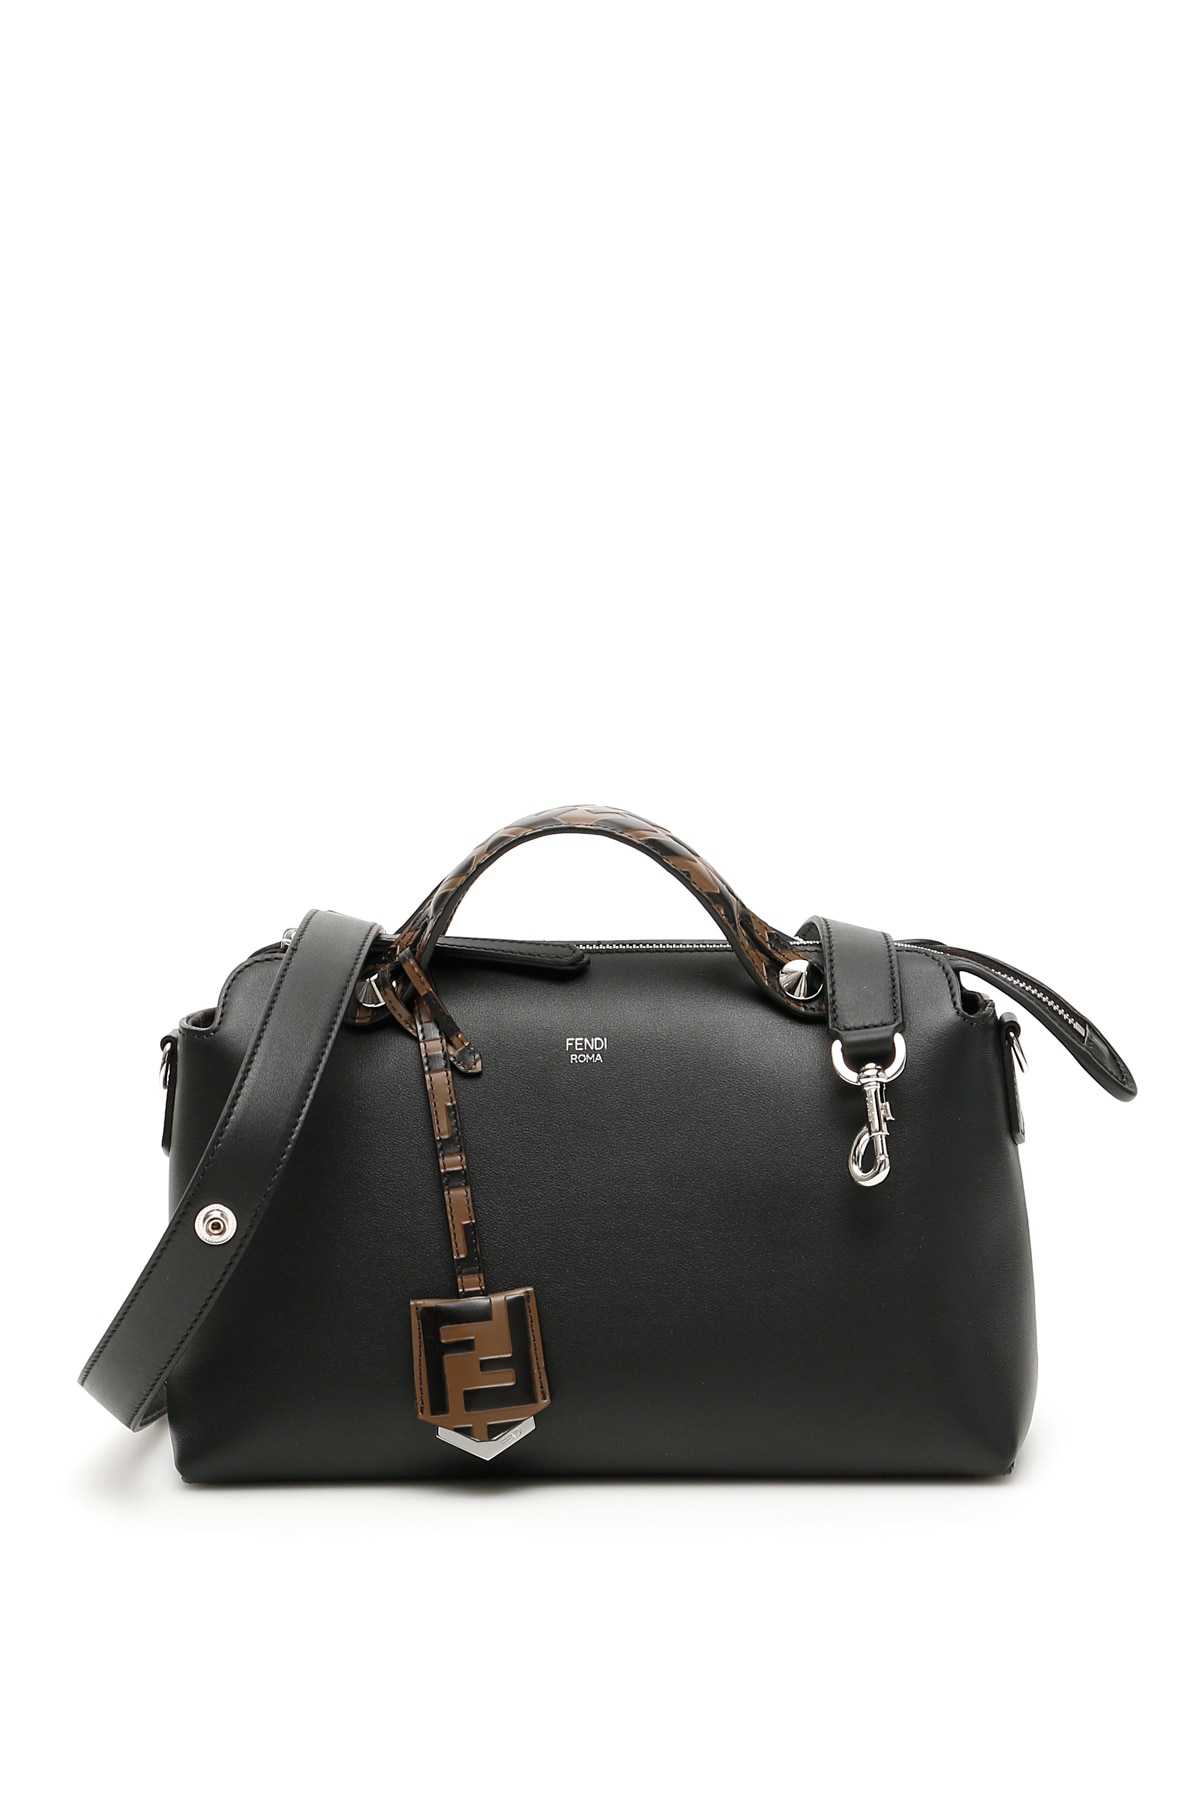 FENDI BY THE WAY FF BAG OS Black, Brown Leather